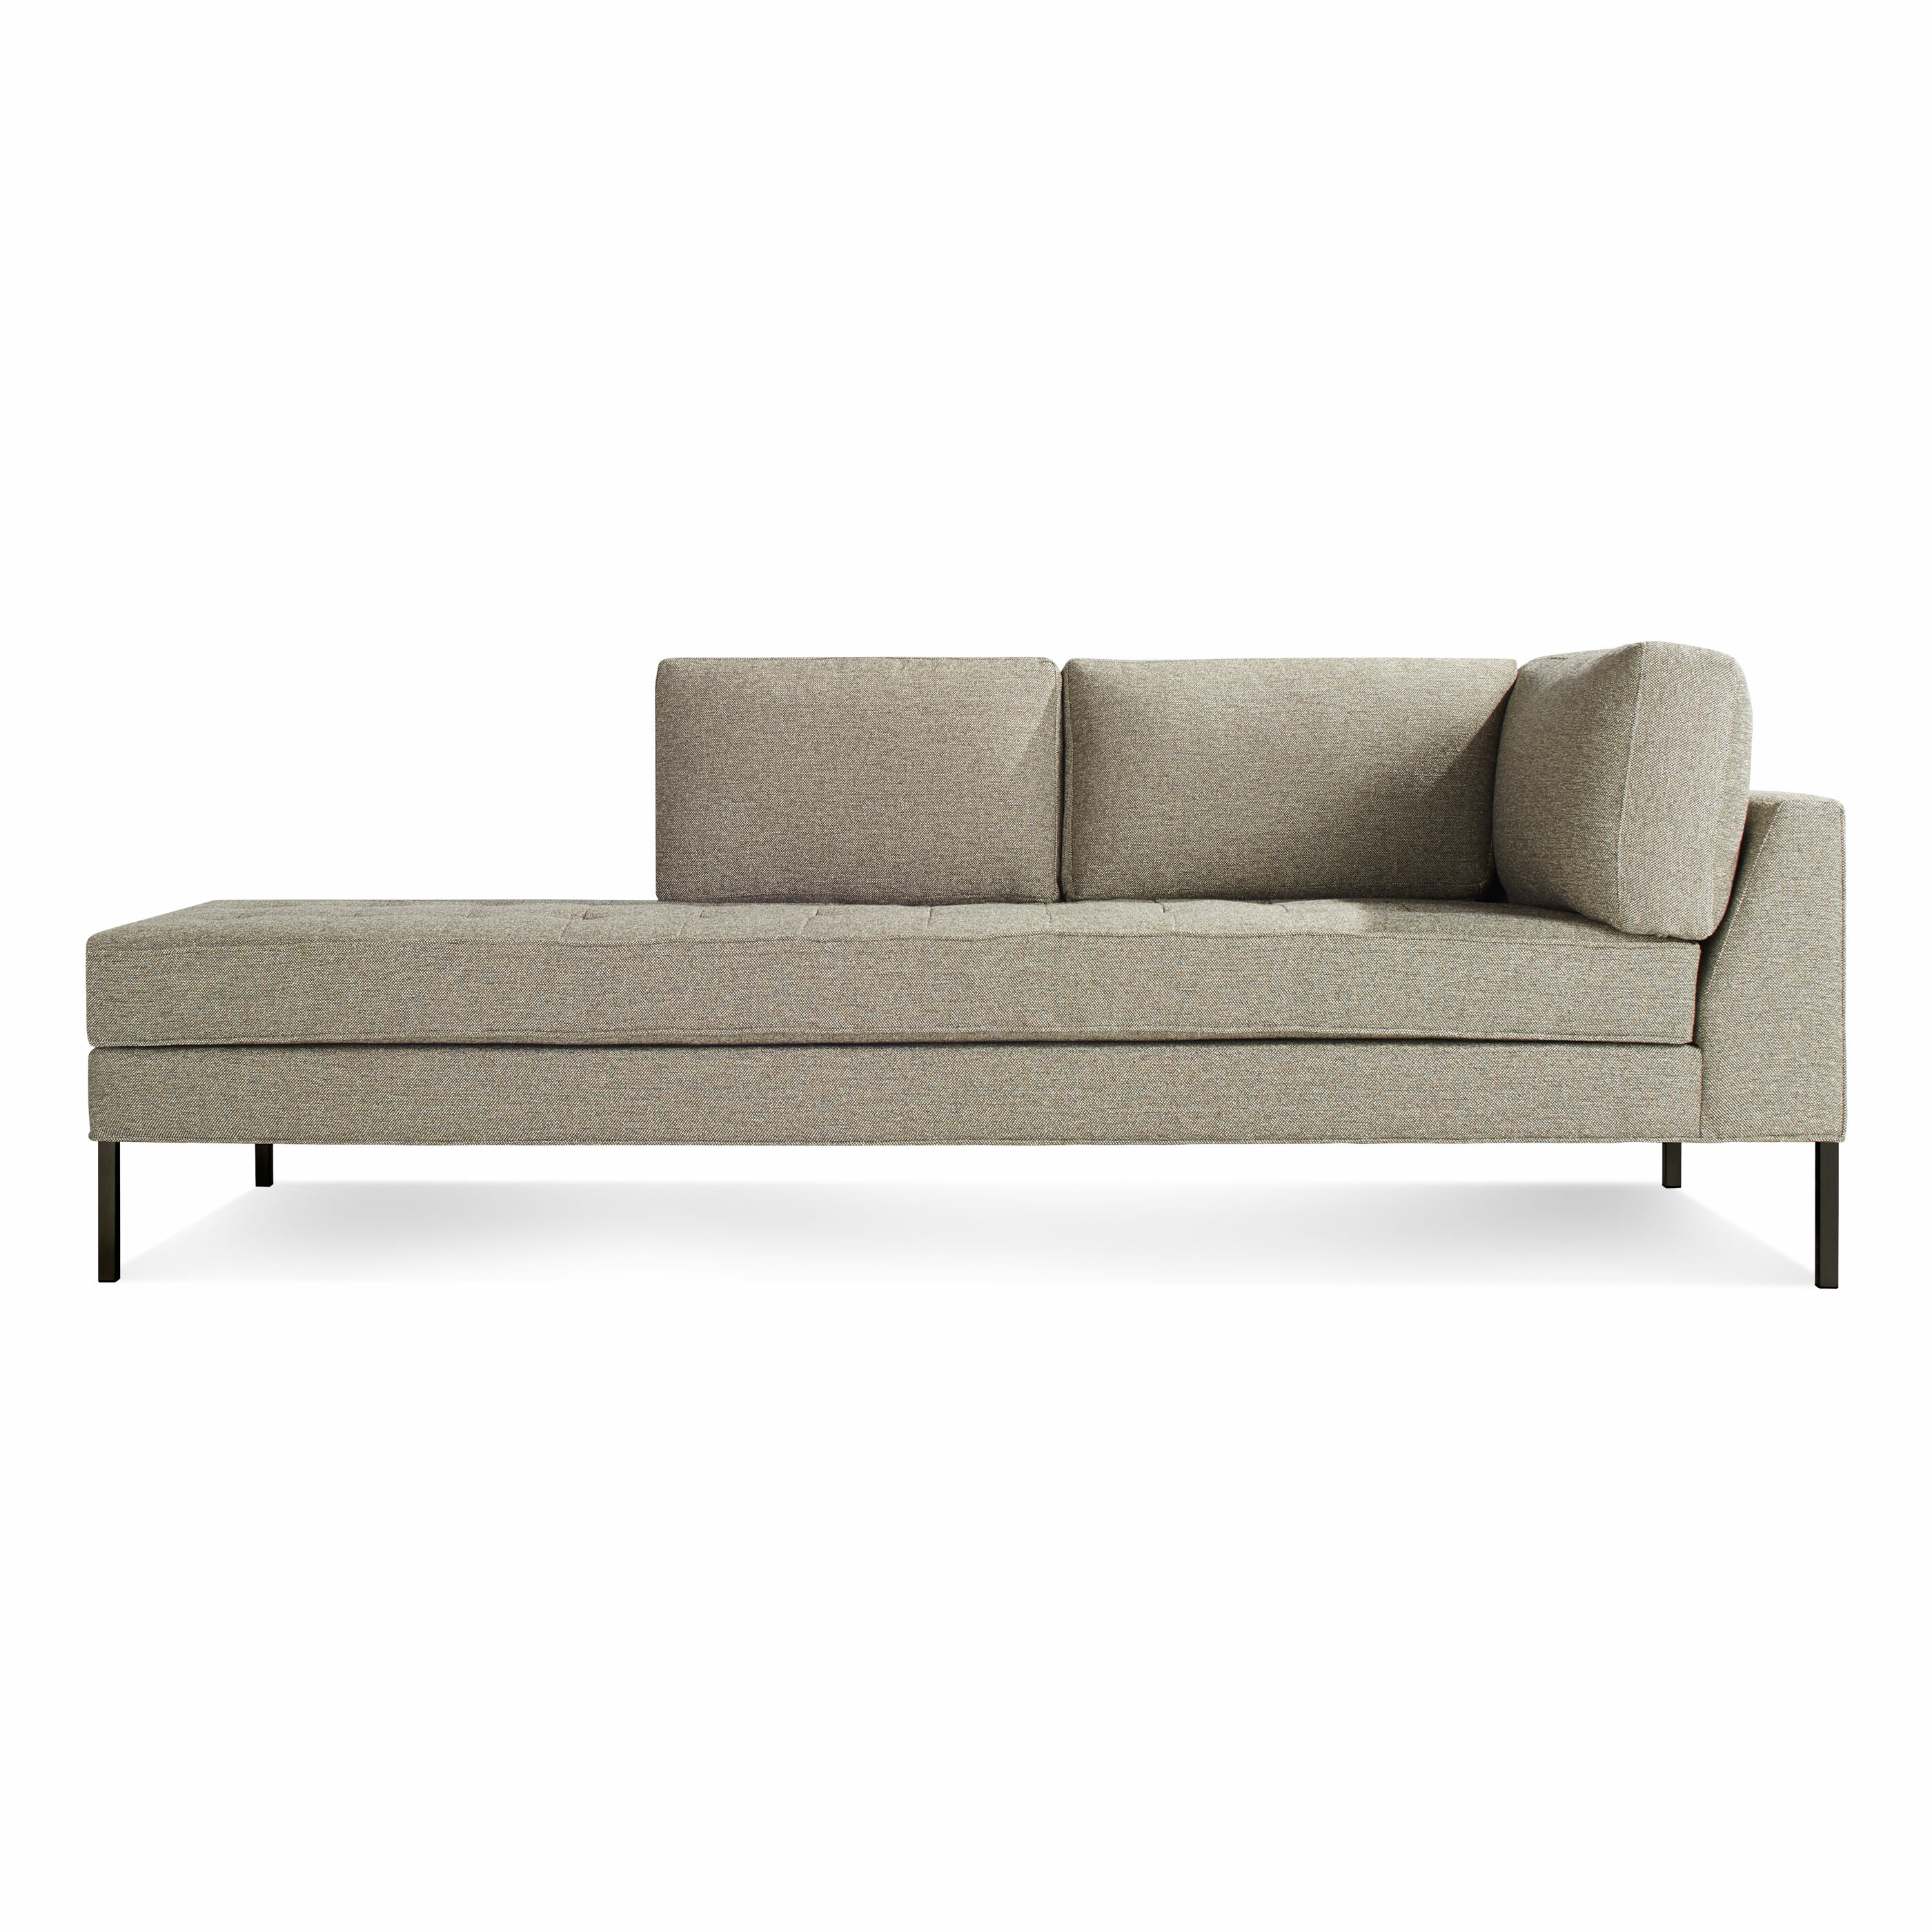 daybed midcentury petrie reviews and crate chaise barrel